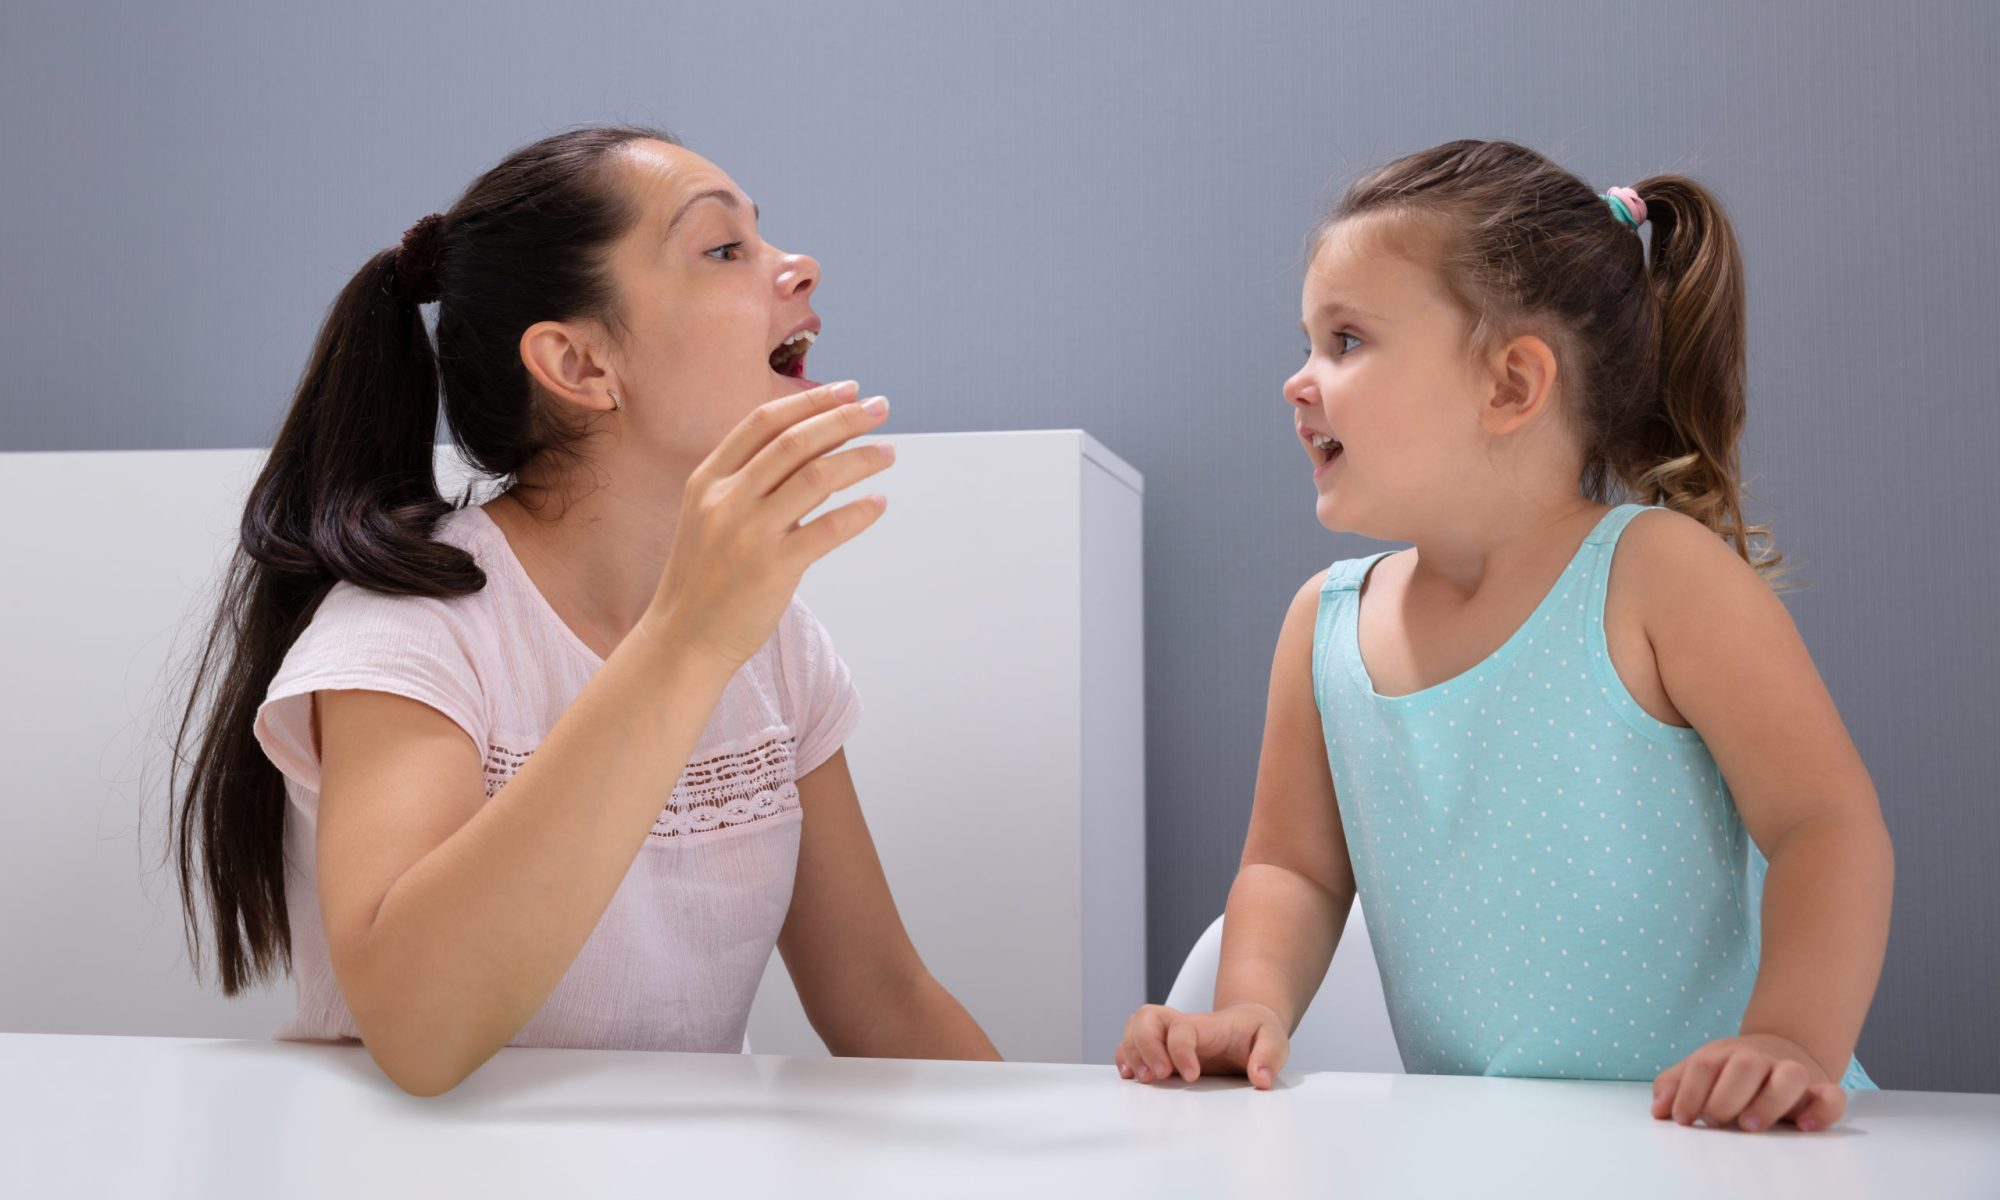 Speech Therapist Helps The Girl How To Pronounce The Sounds